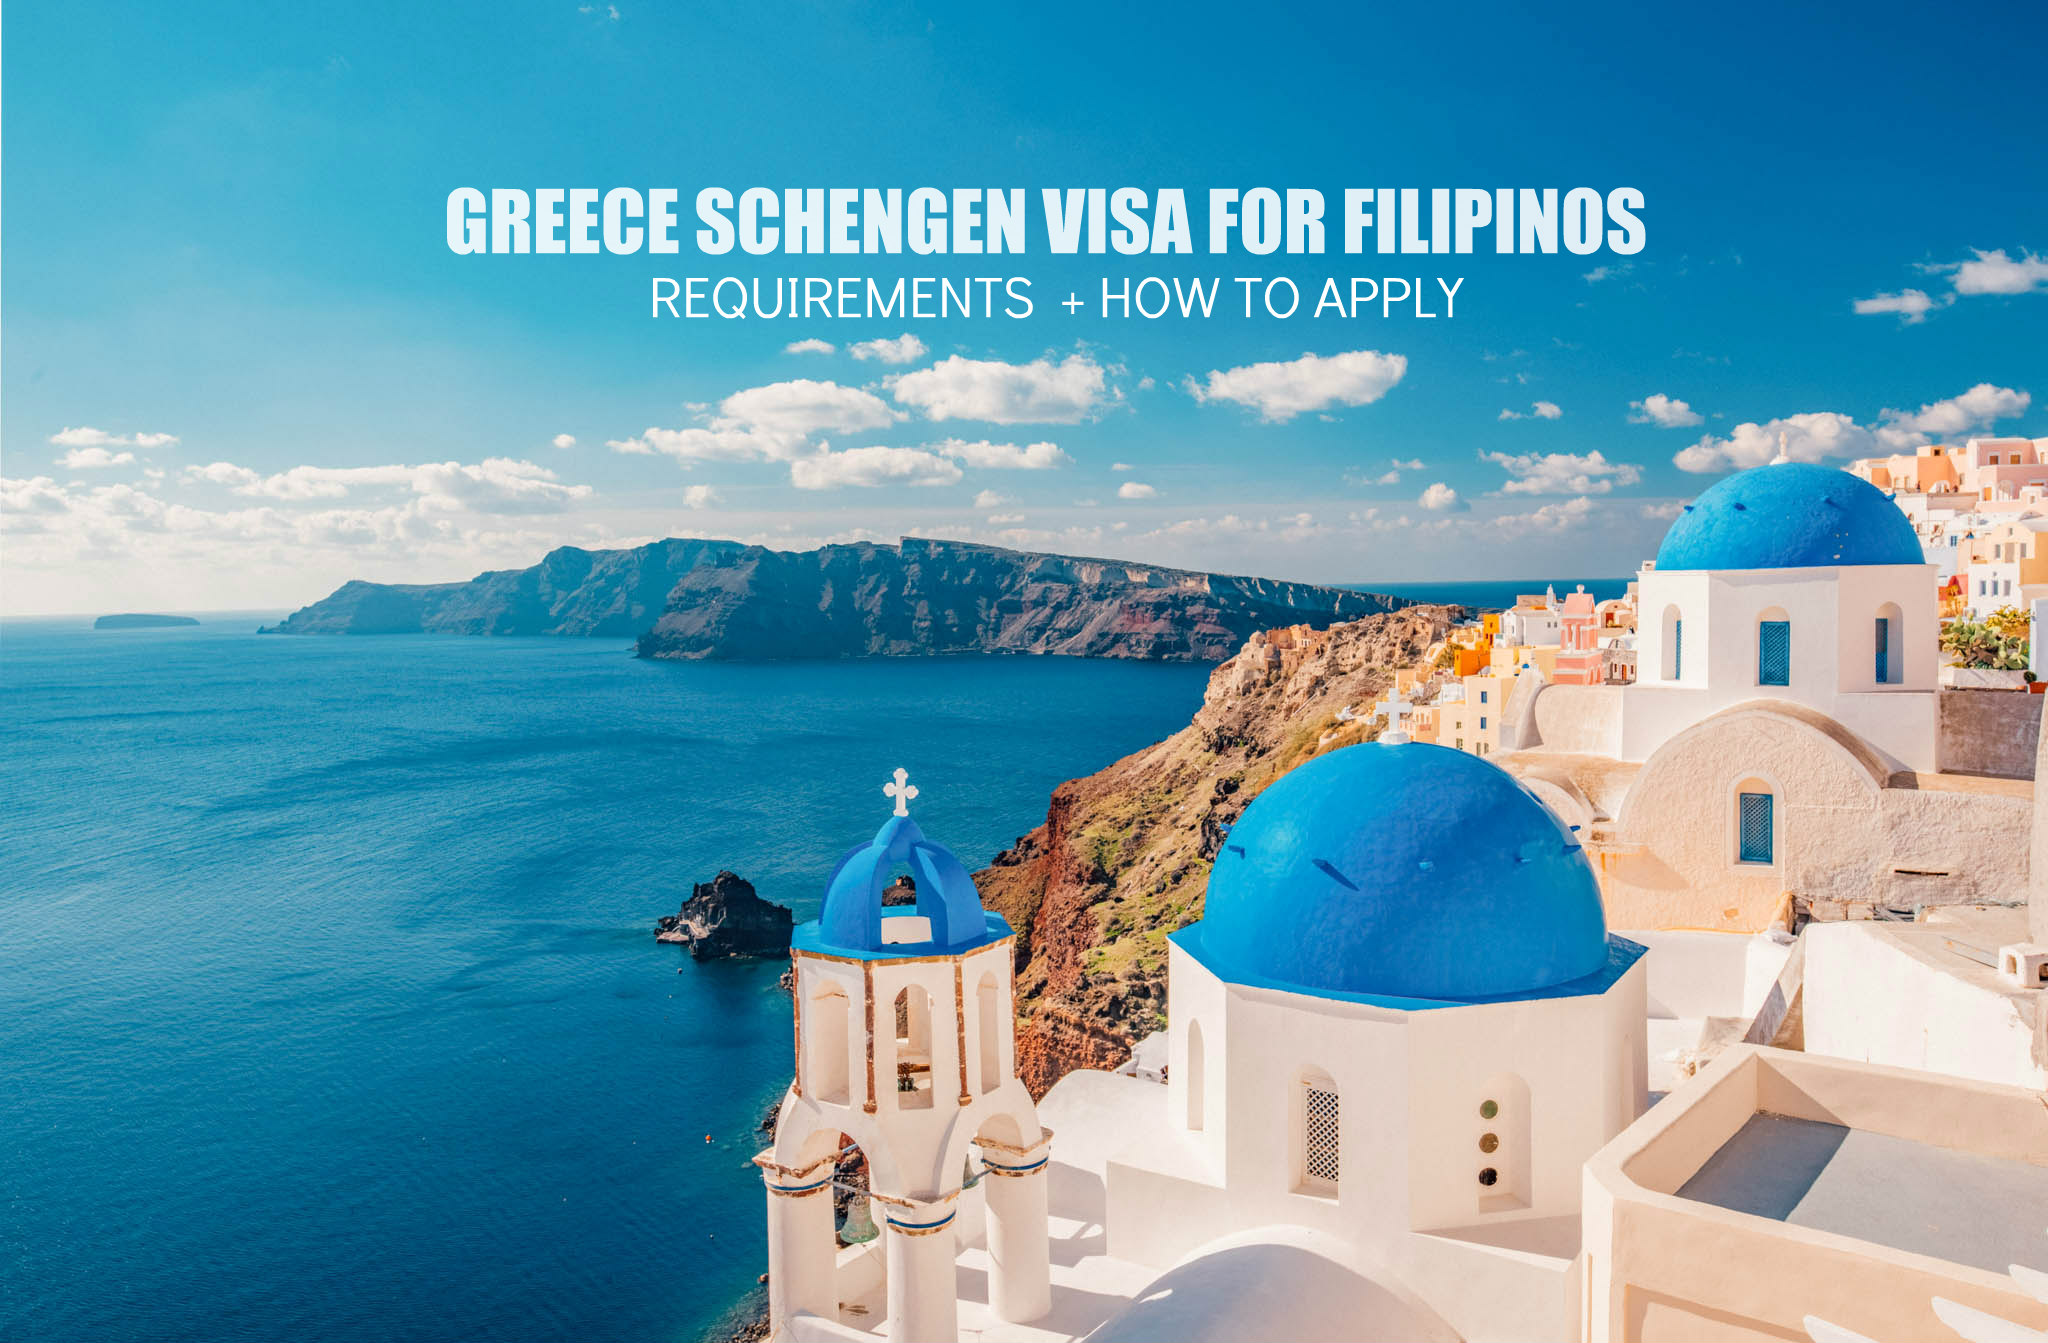 GREECE VISA FOR FILIPINOS: HOW TO APPLY AND REQUIREMENTS